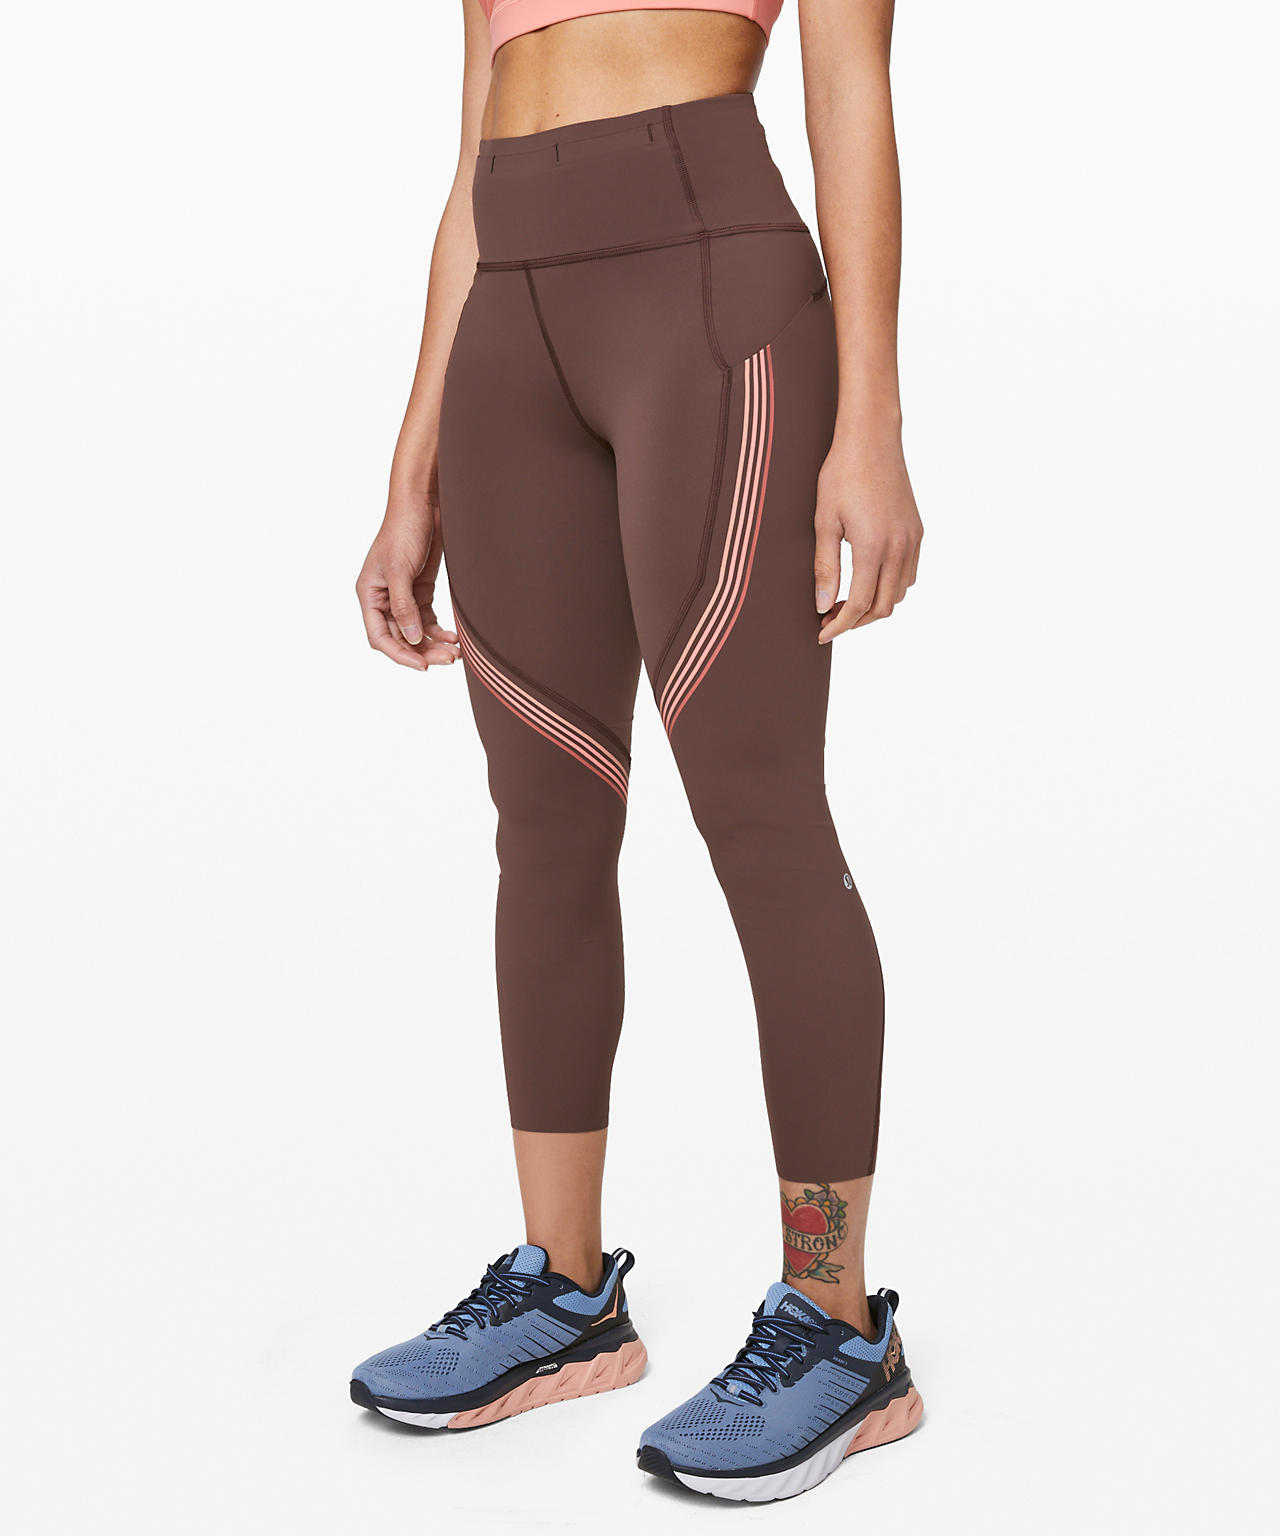 Speed Limit Crop   What's New At Lululemon